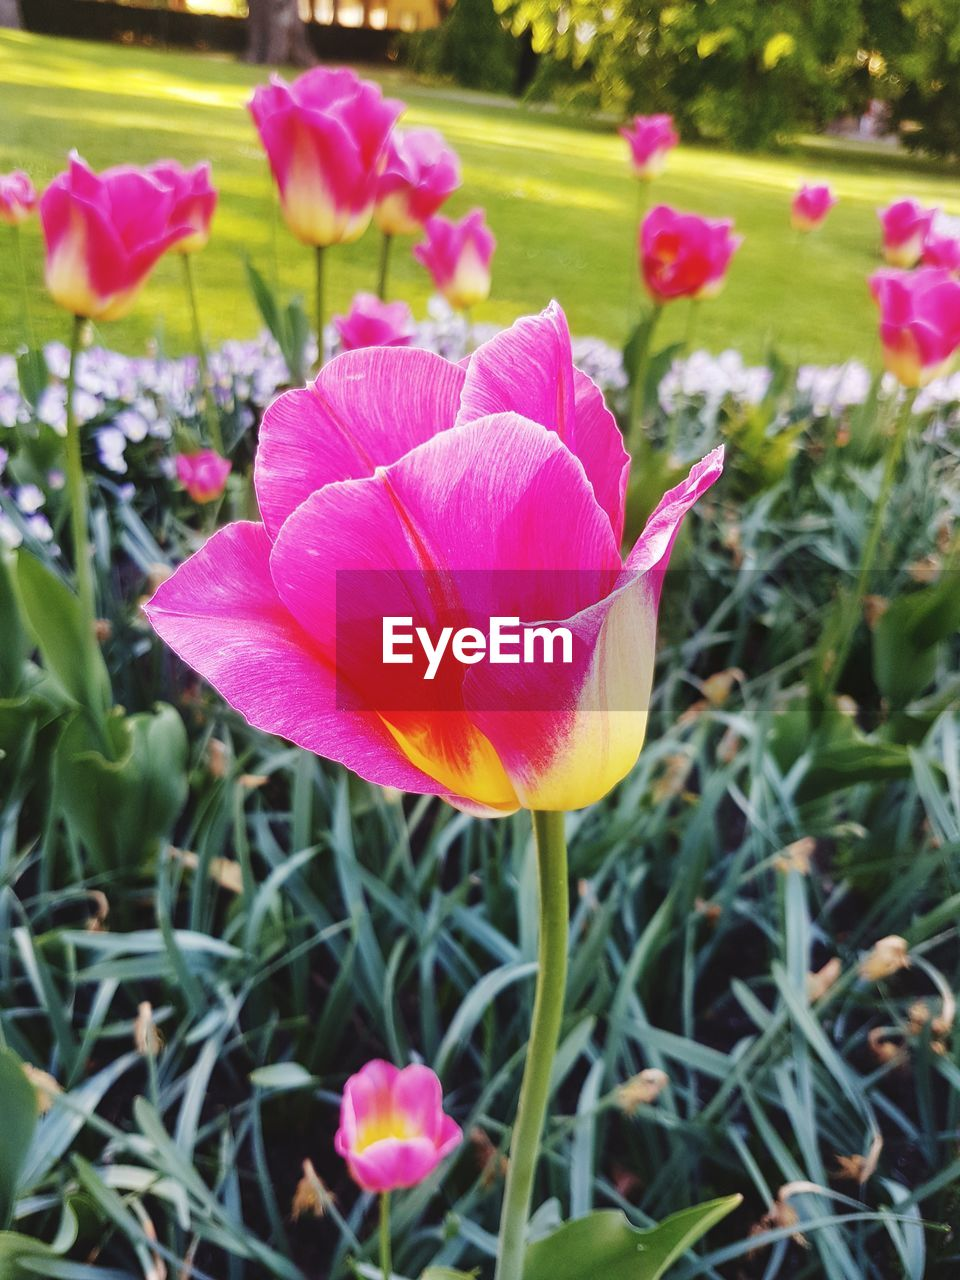 flower, petal, growth, beauty in nature, nature, fragility, pink color, flower head, freshness, plant, blooming, day, no people, outdoors, green color, close-up, focus on foreground, leaf, springtime, crocus